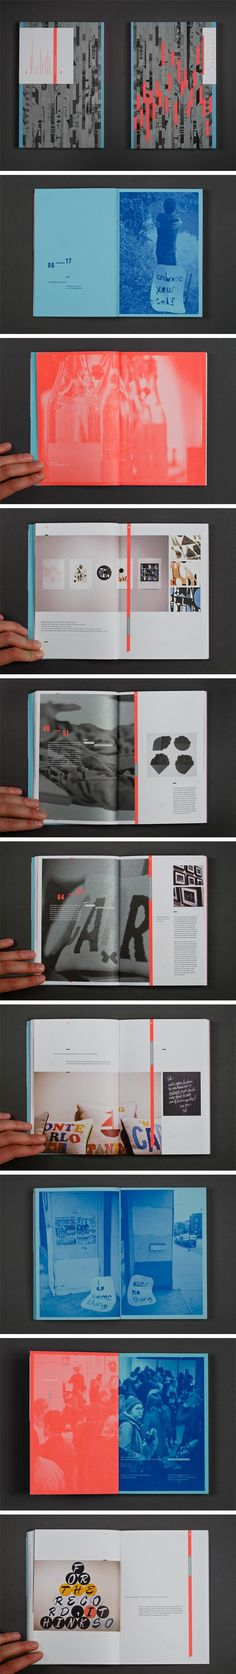 Typeforce 2 Exhibition Catalogue.I like the colour choices and the abstract layout. I think it shows how to add space and graphic elements to designs.